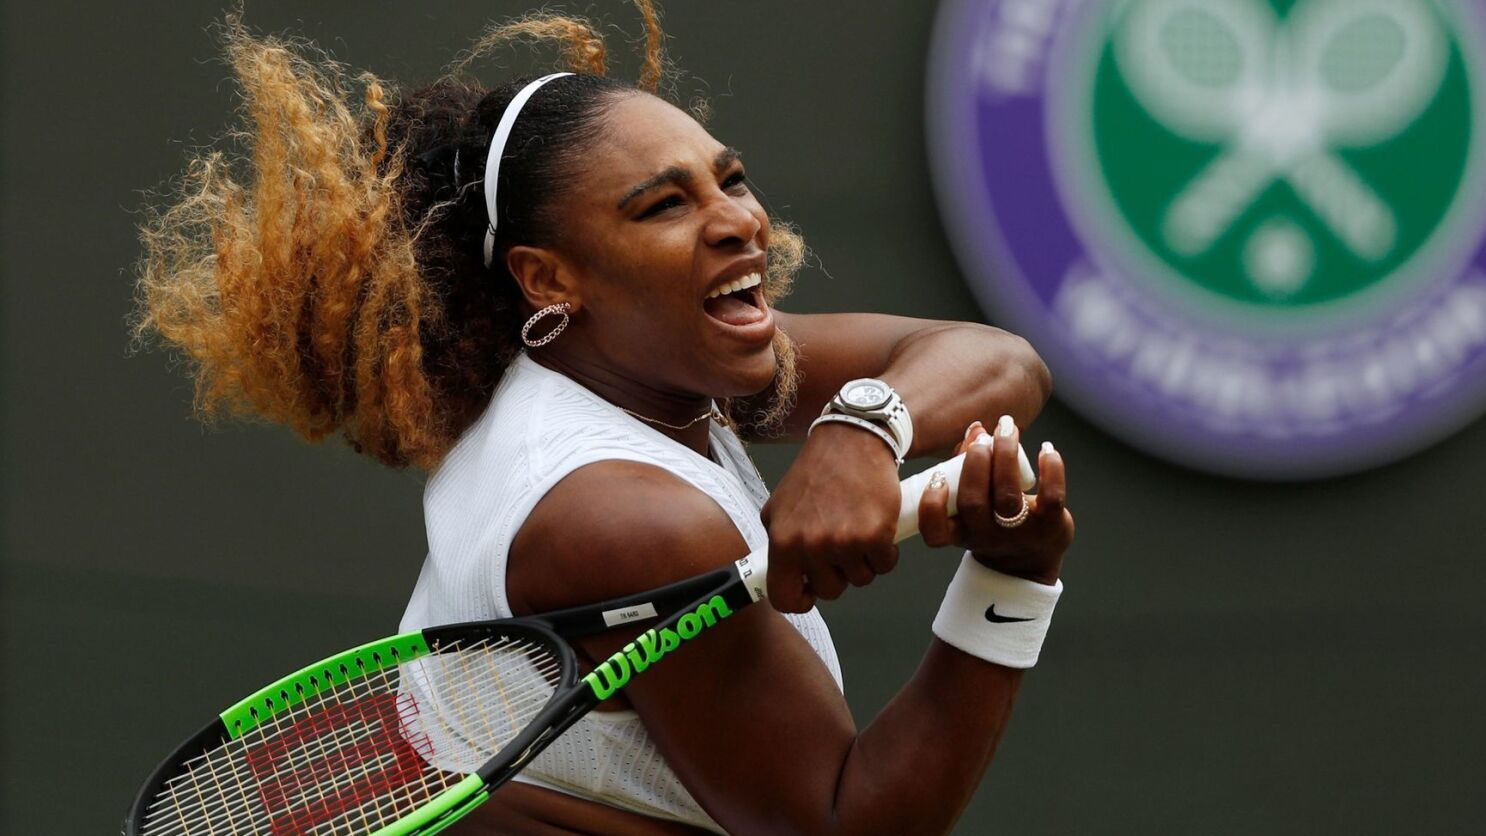 Wimbledon Serena Williams Roger Federer And Rafael Nadal Easily Win Los Angeles Times